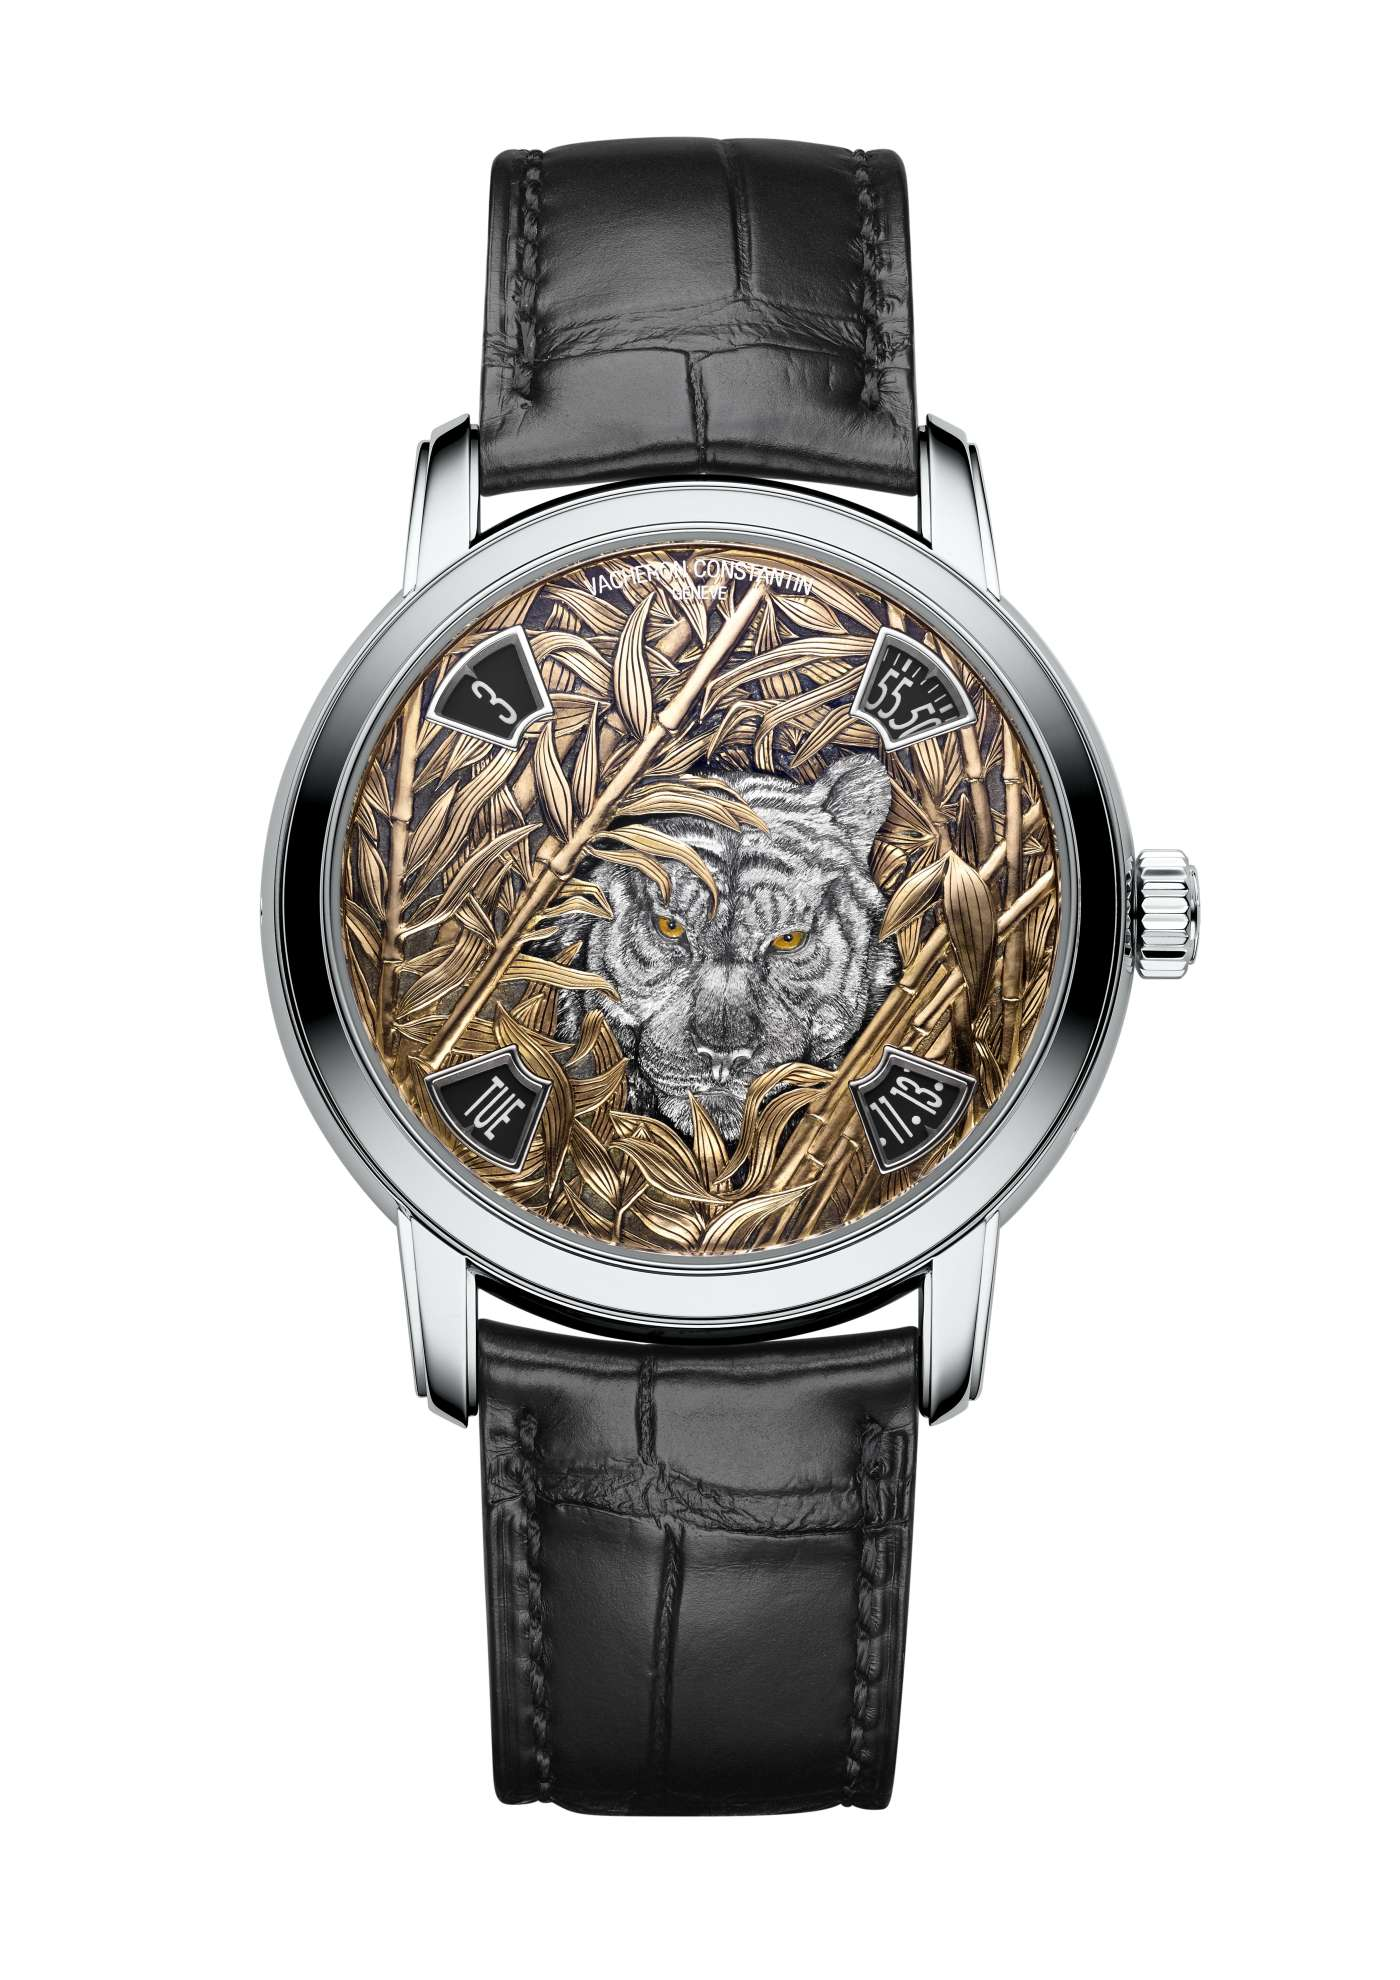 Les Cabinotiers Mysterious Animals Tiger от Vacheron Constantin